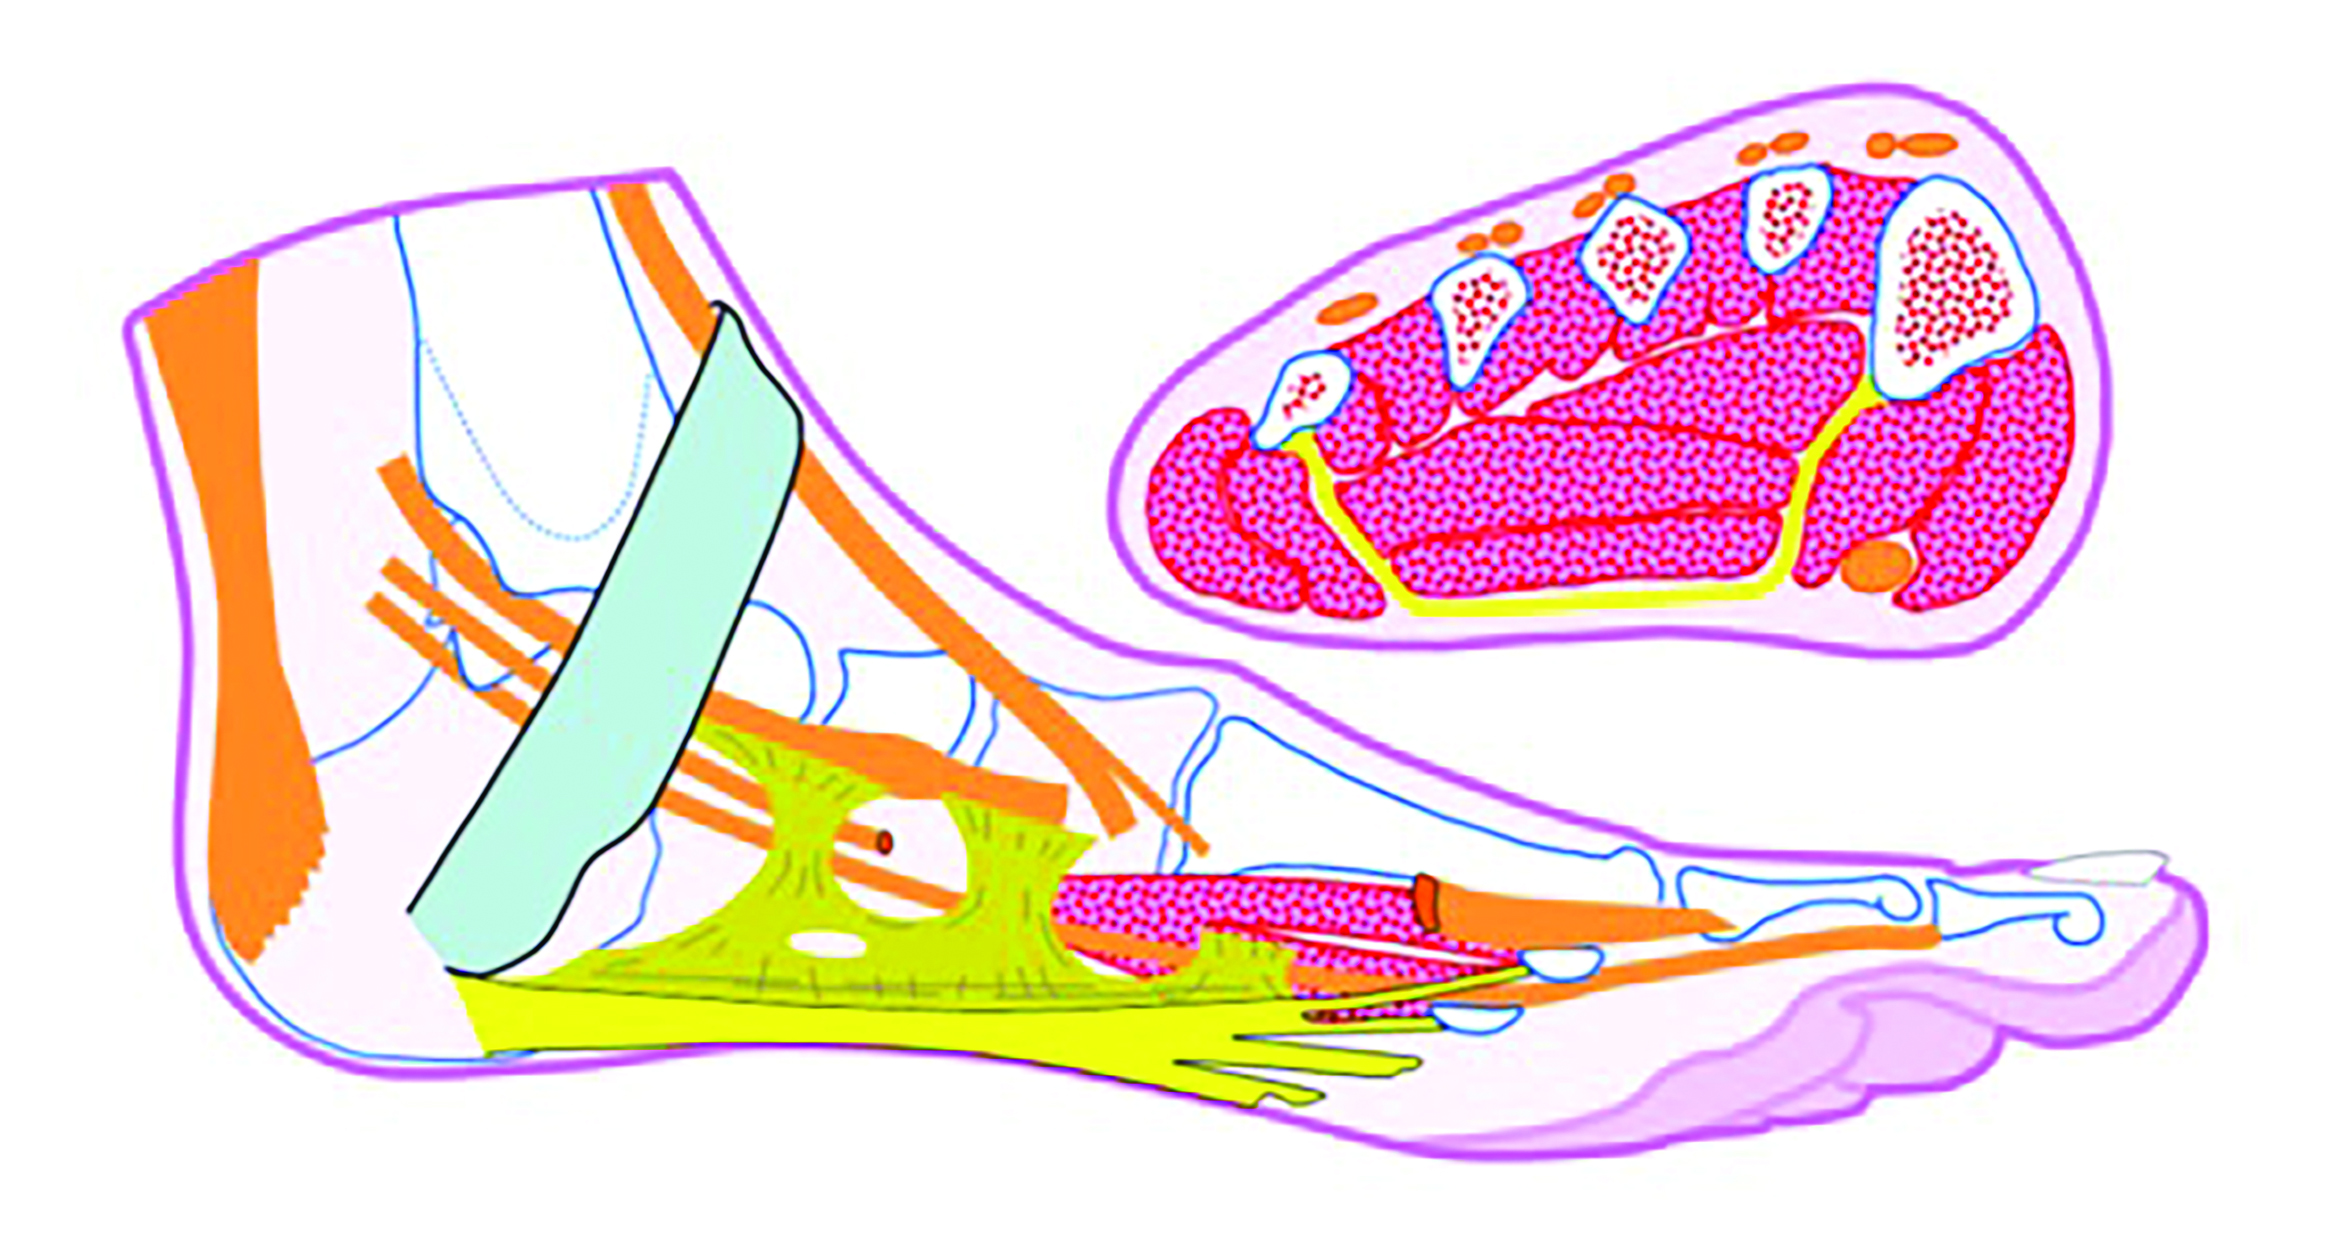 In this graphic, one can see that the plantar fascia forms the deep fascia of the foot and serves as a partial origin for flexor digitorum brevis. The medial and lateral bands of the plantar fascia are variable in nature whereas the central band (yellow) in continuous with the intermuscular septae, and is thought to play a critical role in foot function. It is also most commonly implicated in plantar fasciitis.